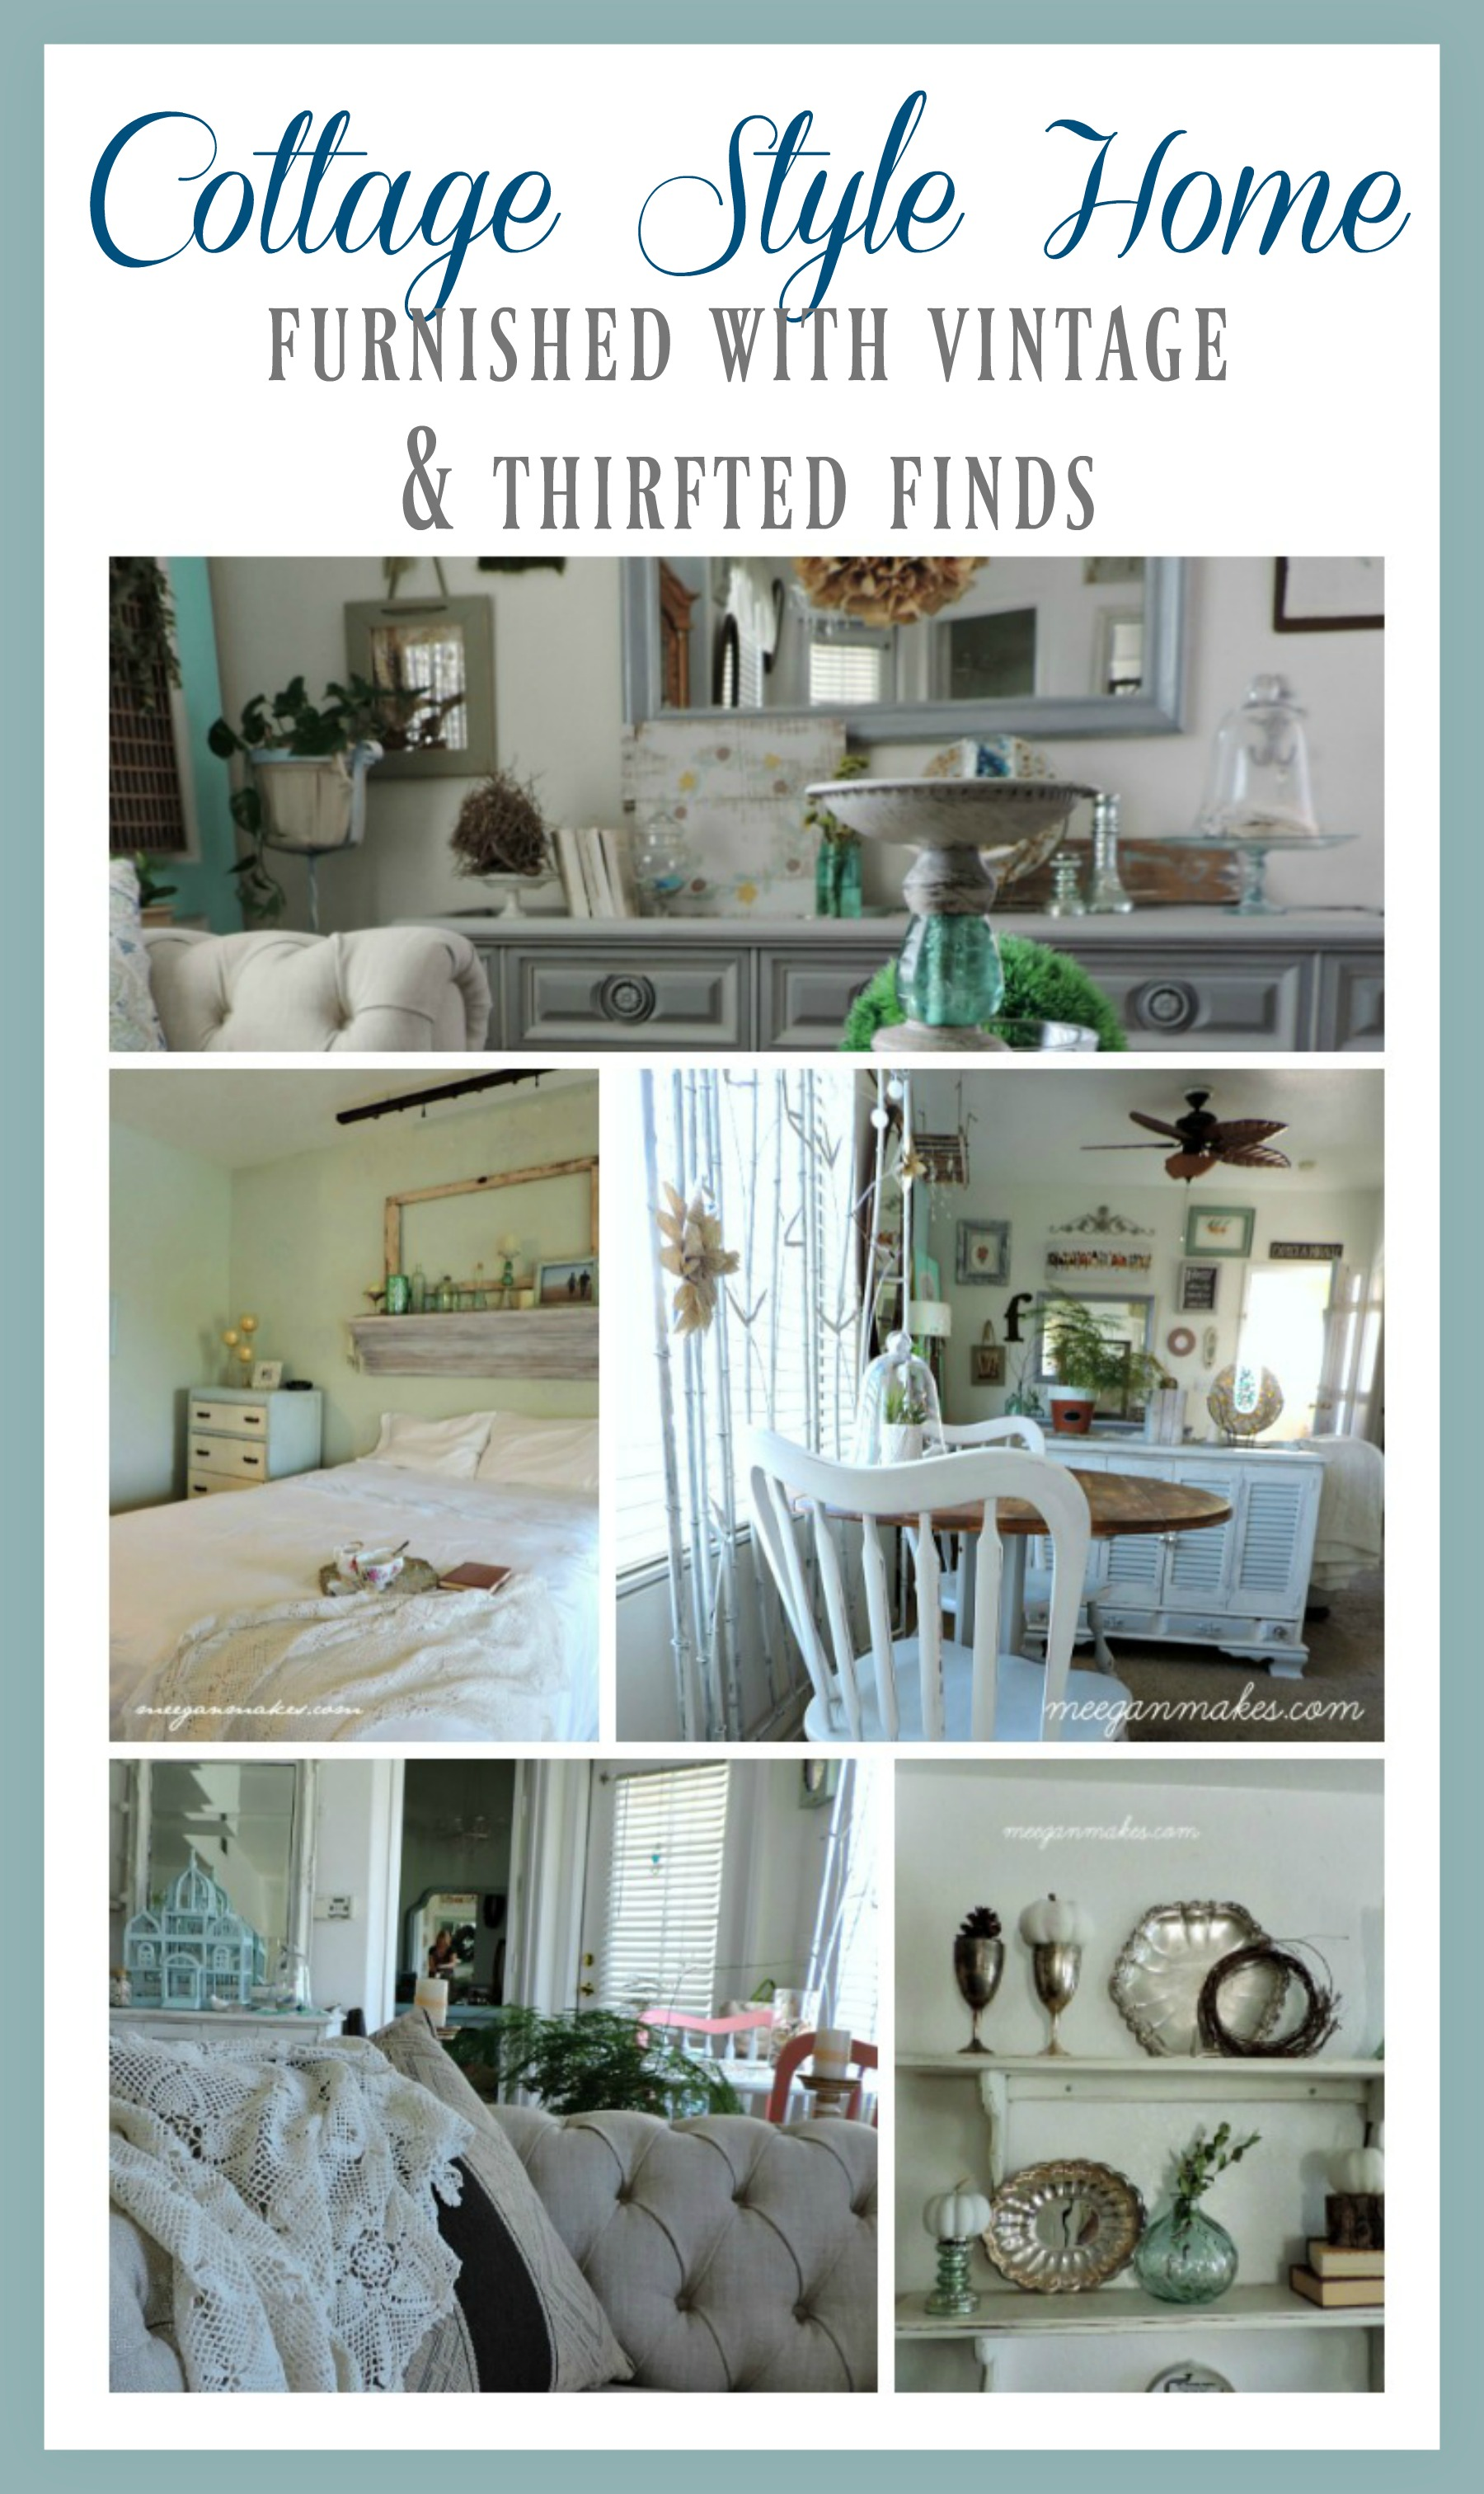 Cottage Style Home What Meegan Makes